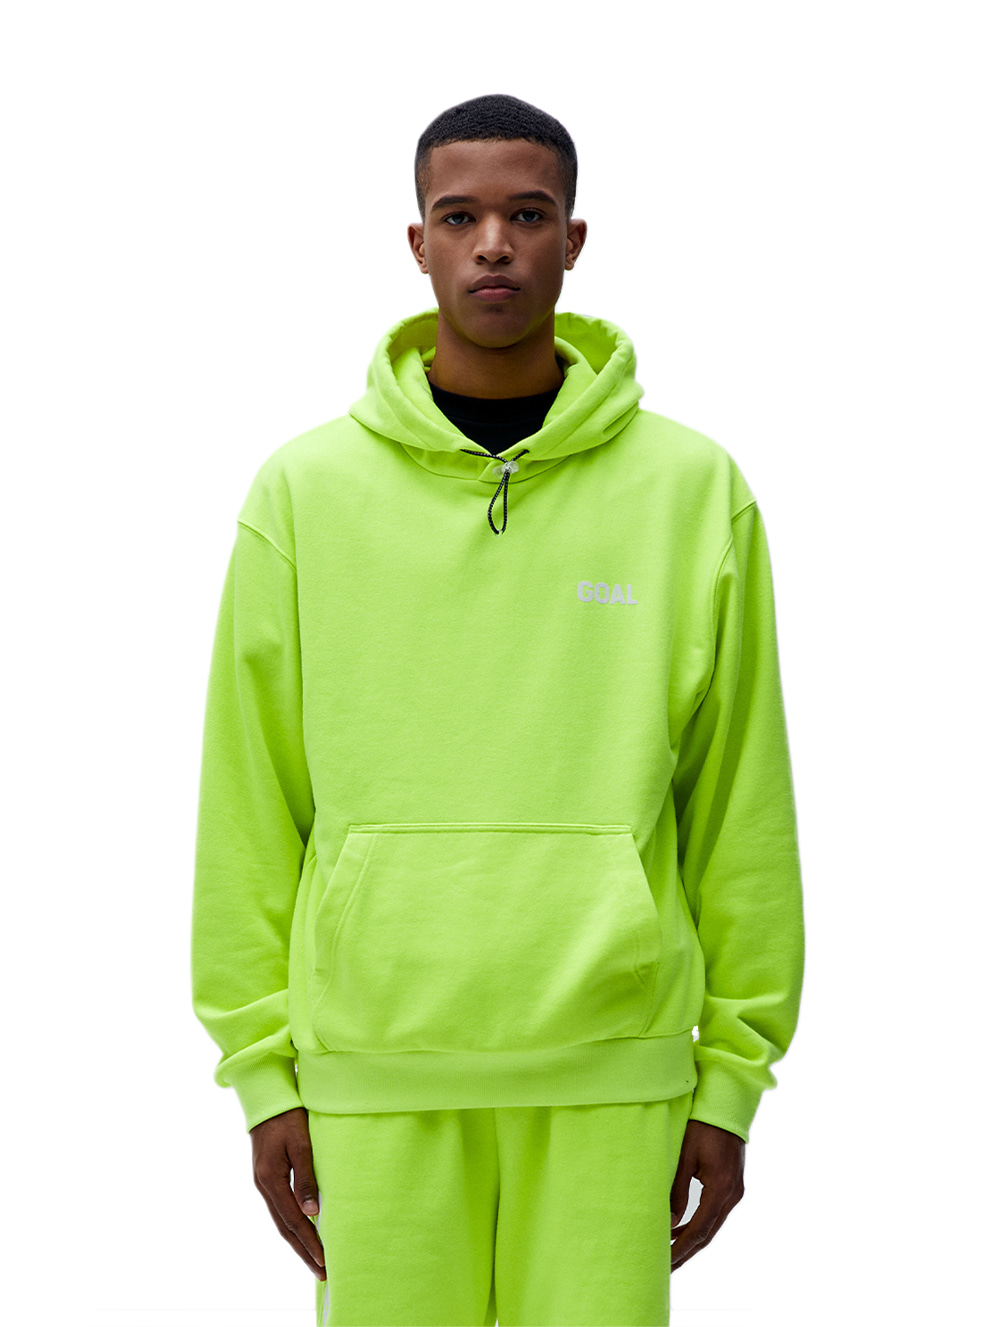 FLOCKING HOODIE - LIME YELLOW